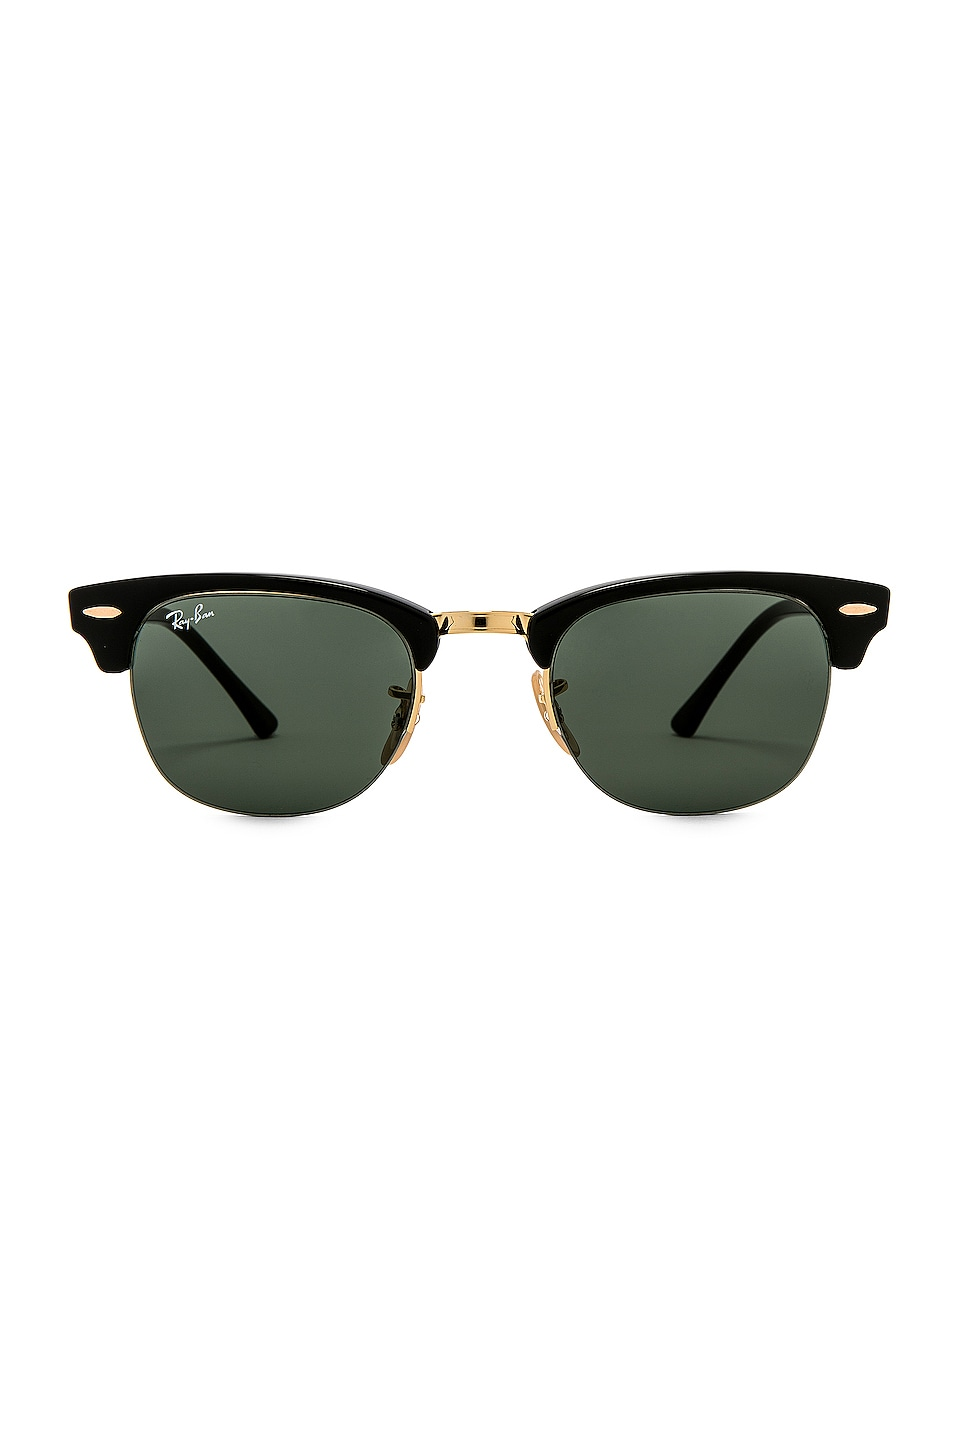 Ray-Ban Clubmaster in Black & Green